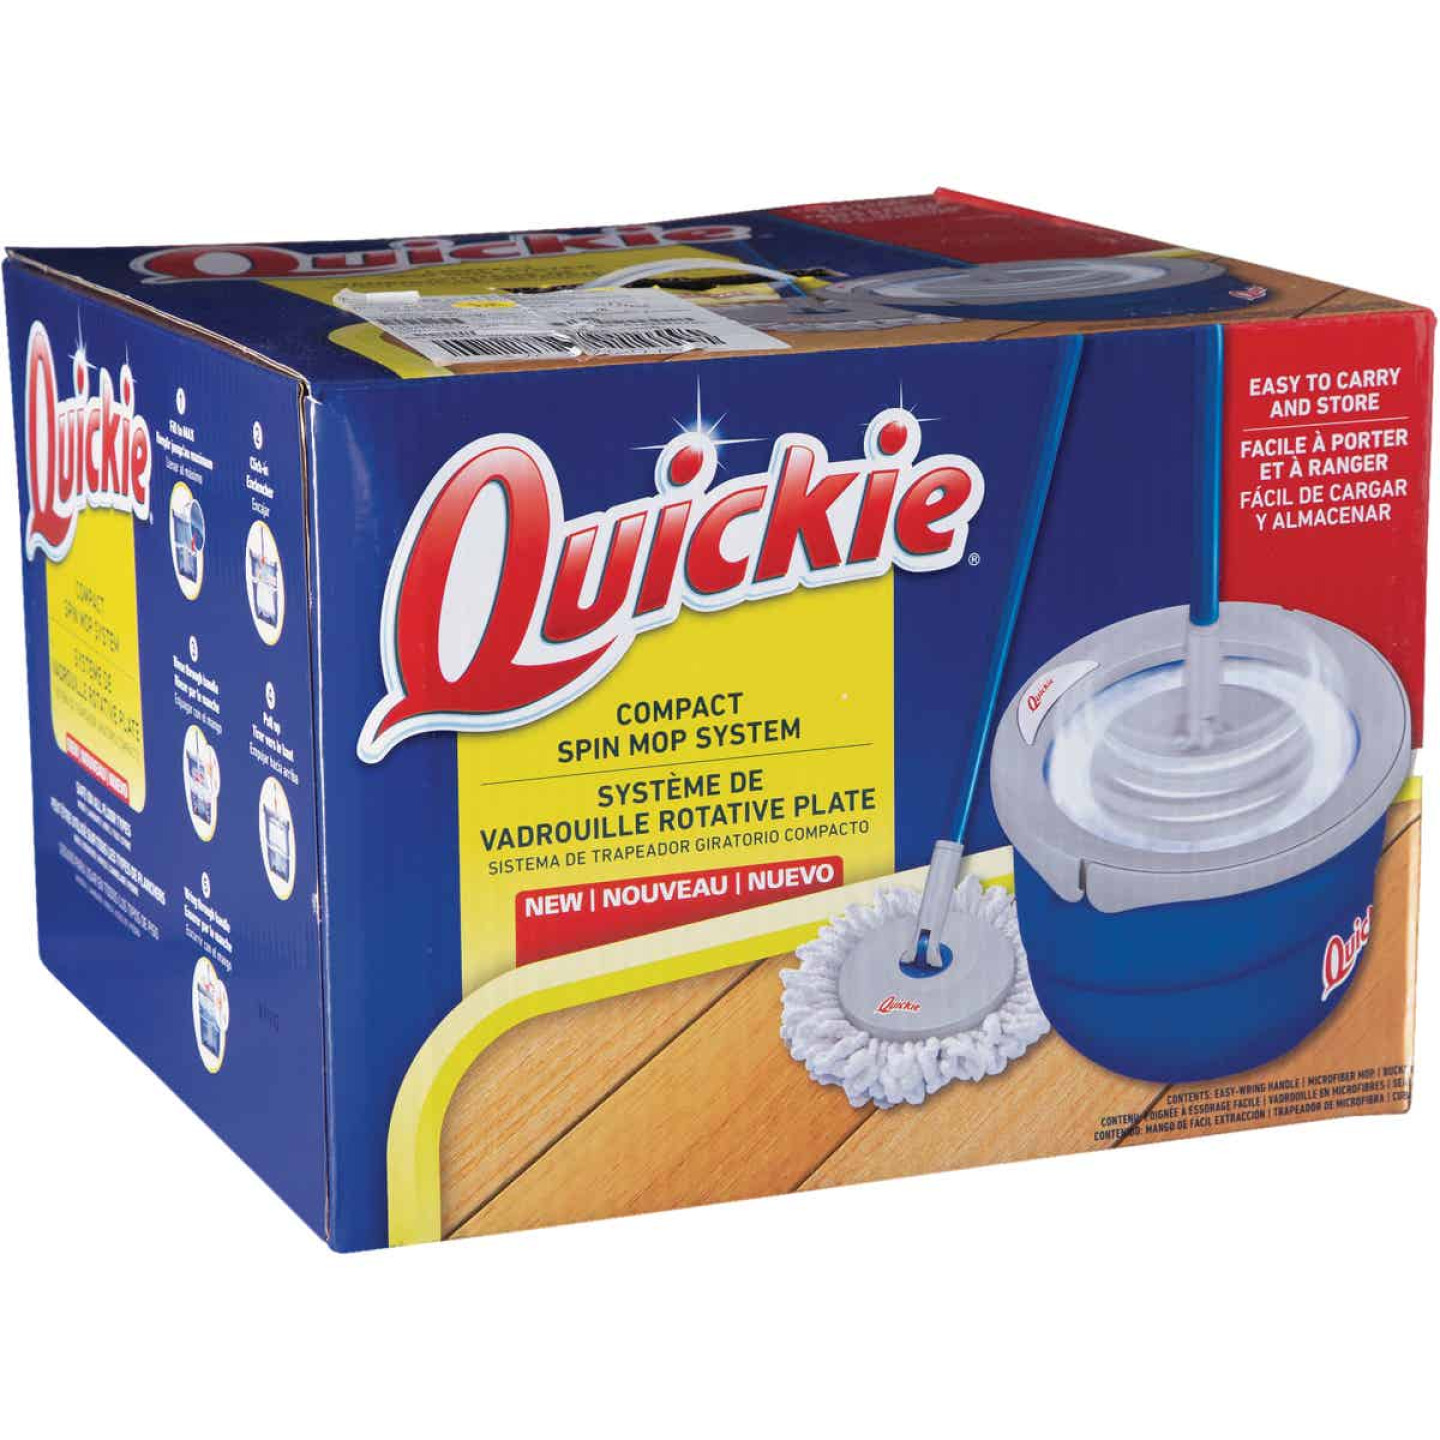 Quickie Compact Spin Mop & Bucket System Image 1